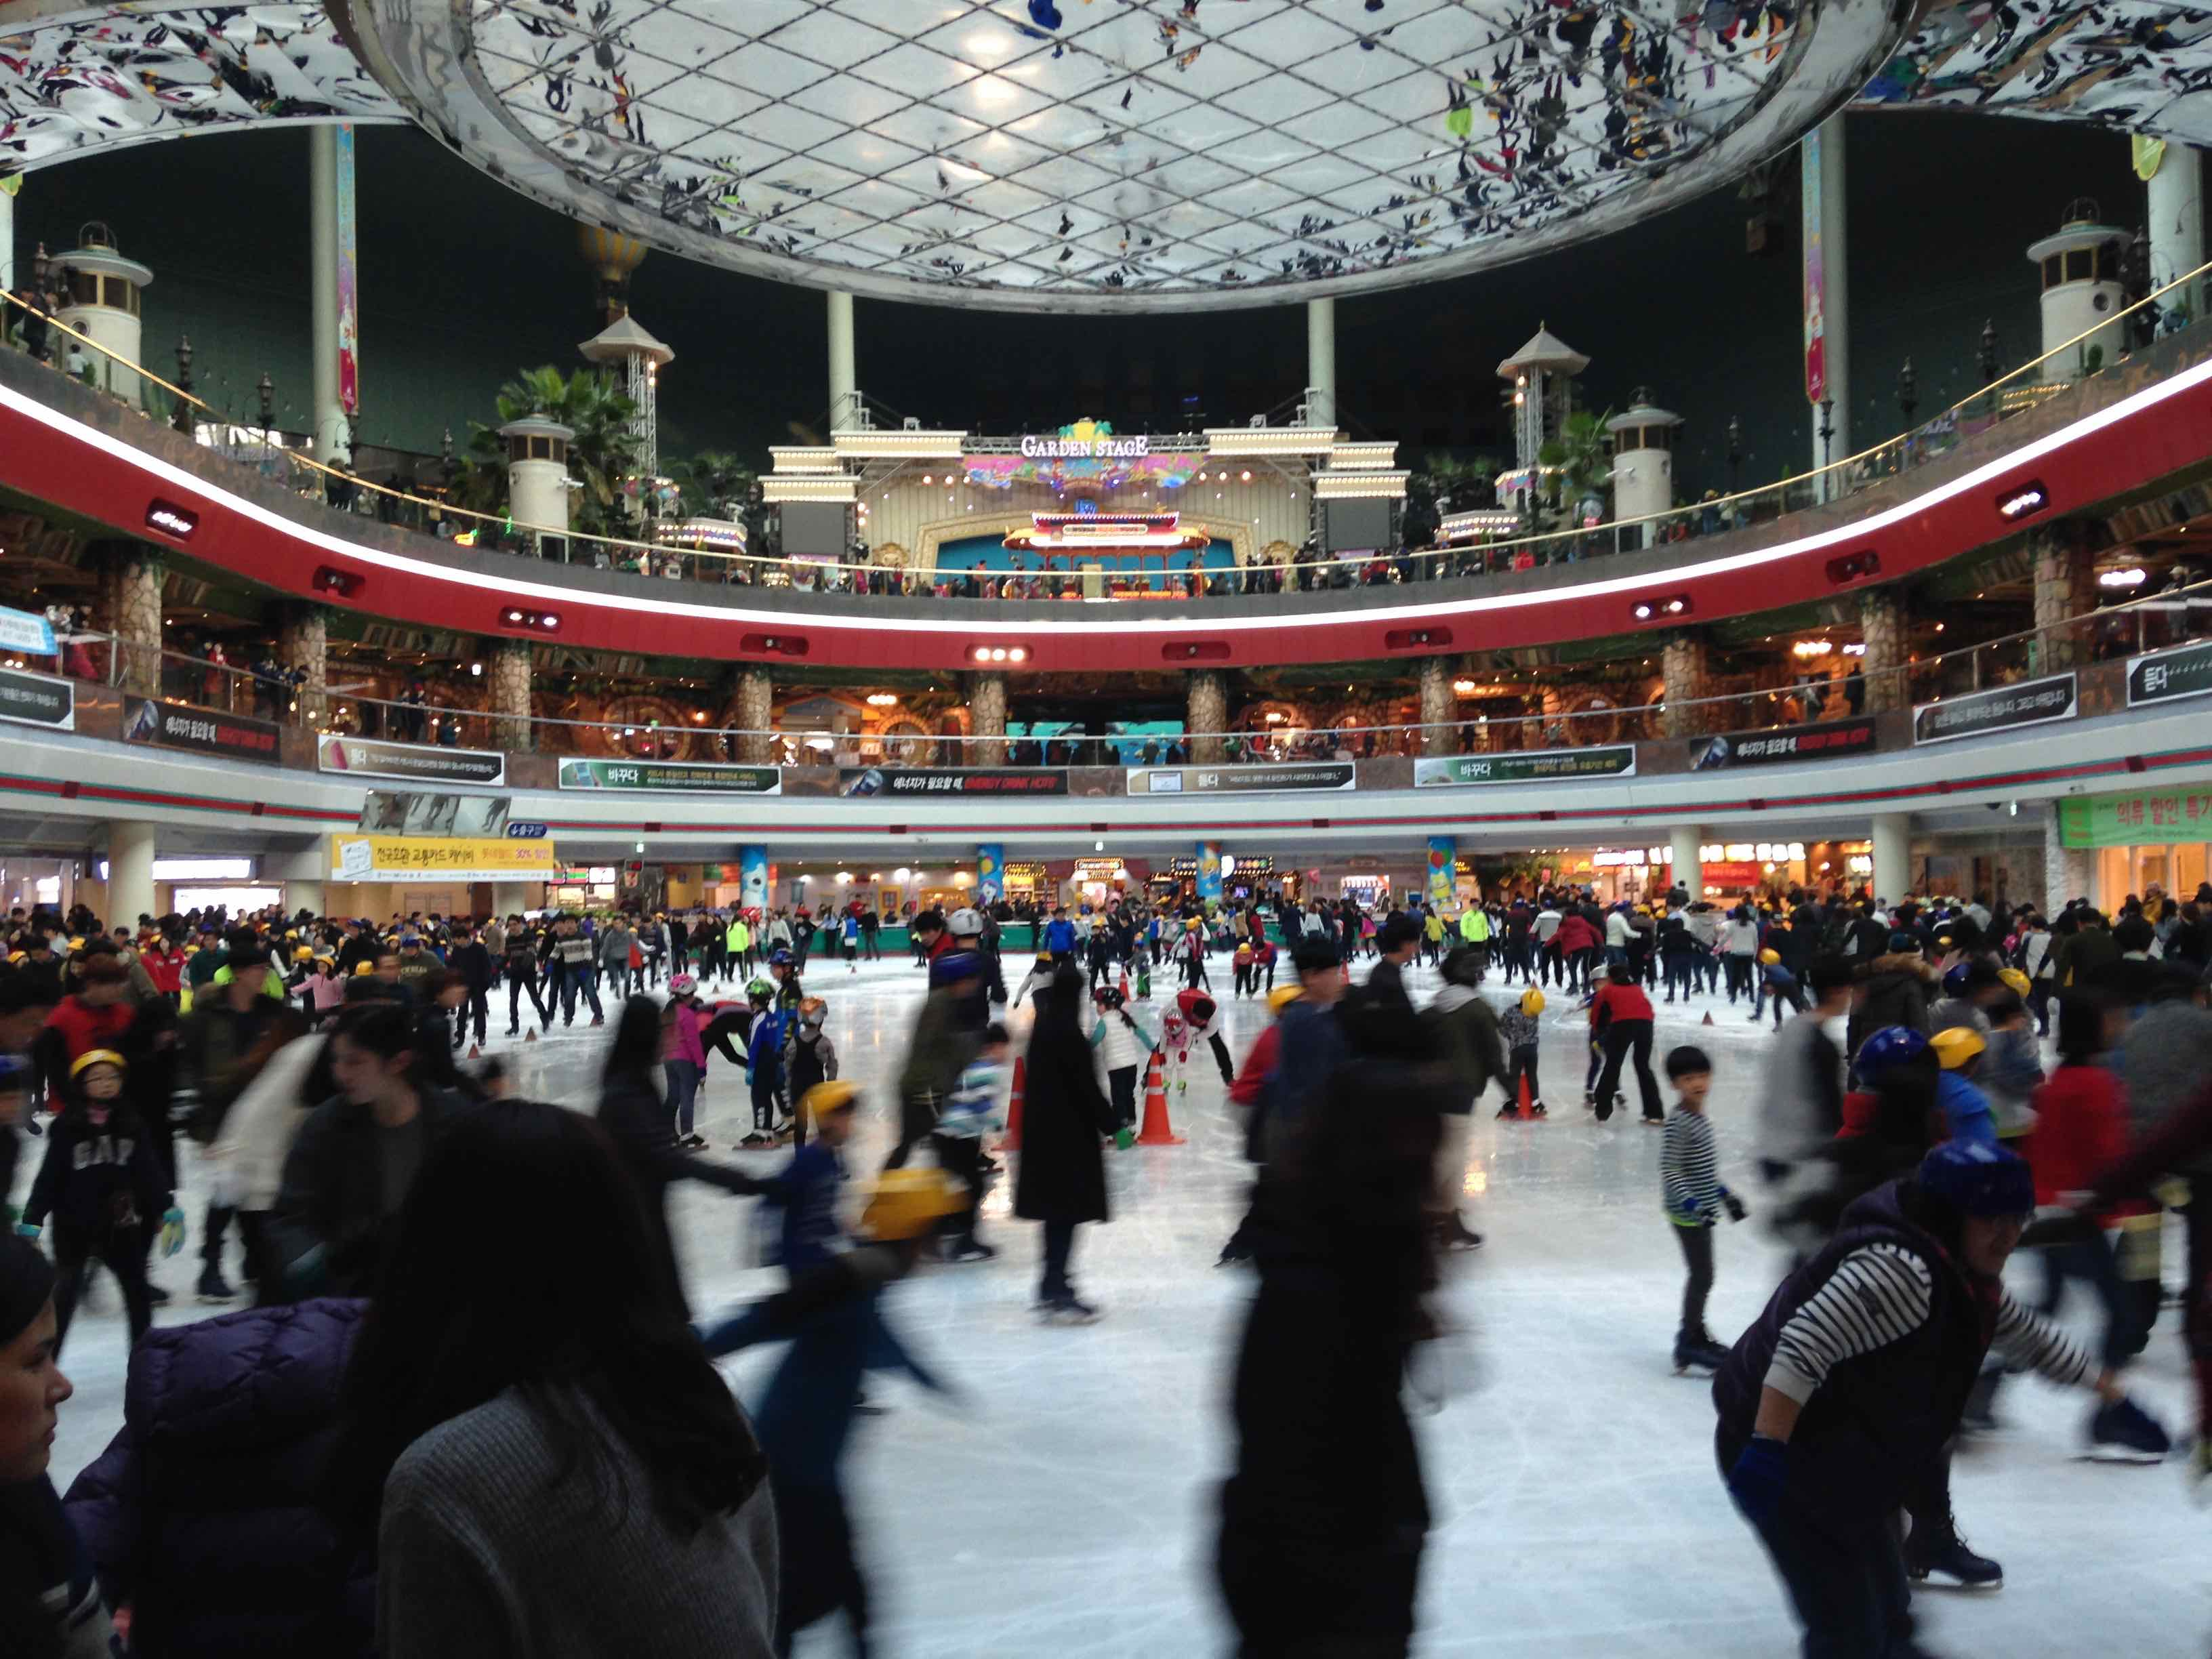 Lotte World ice rink